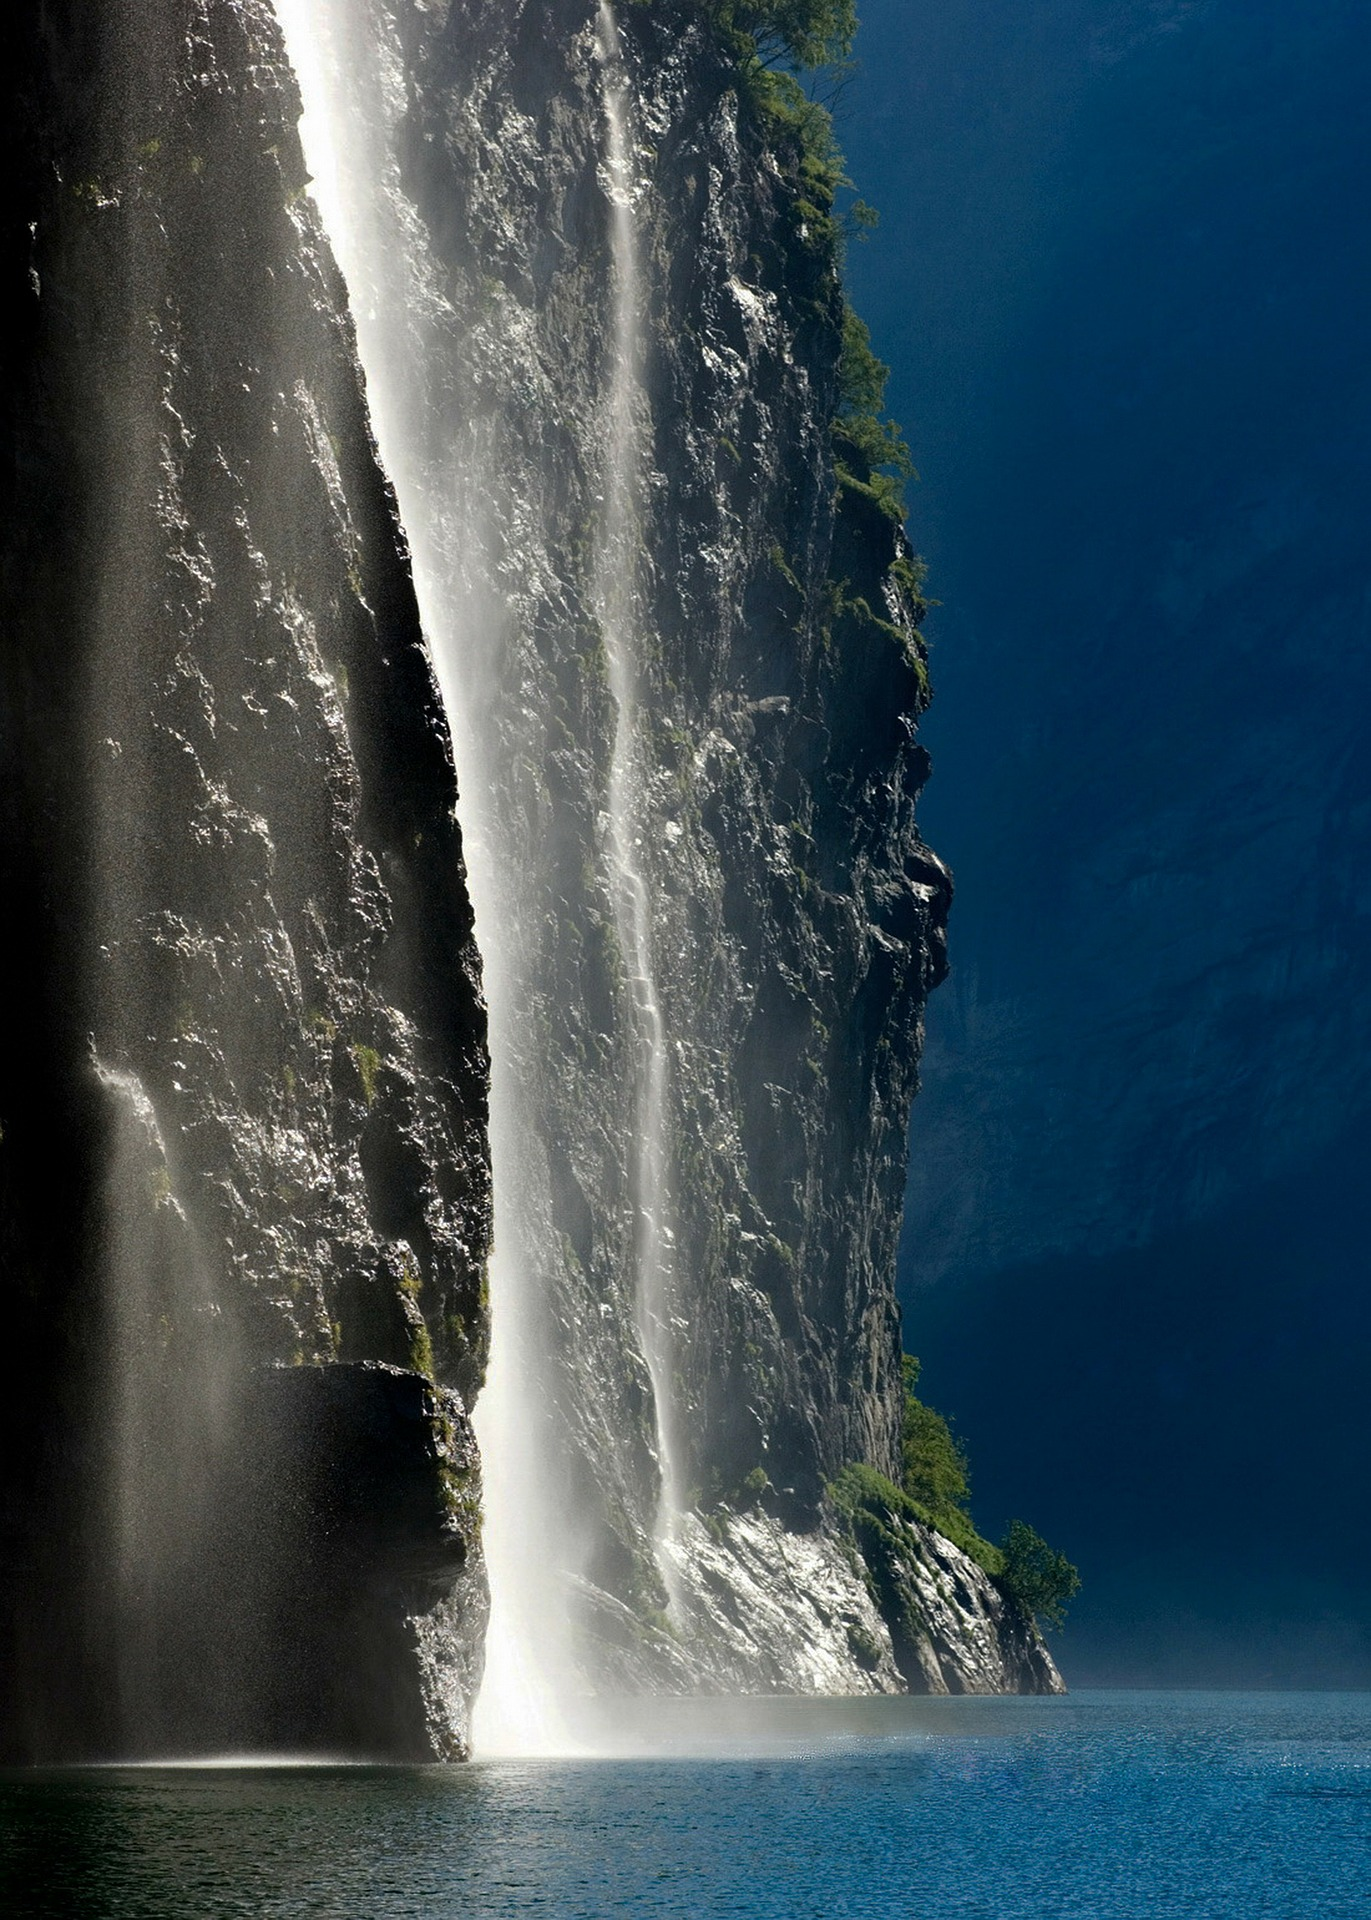 waterfalls Archives - Hawaii Tours Discount Blog